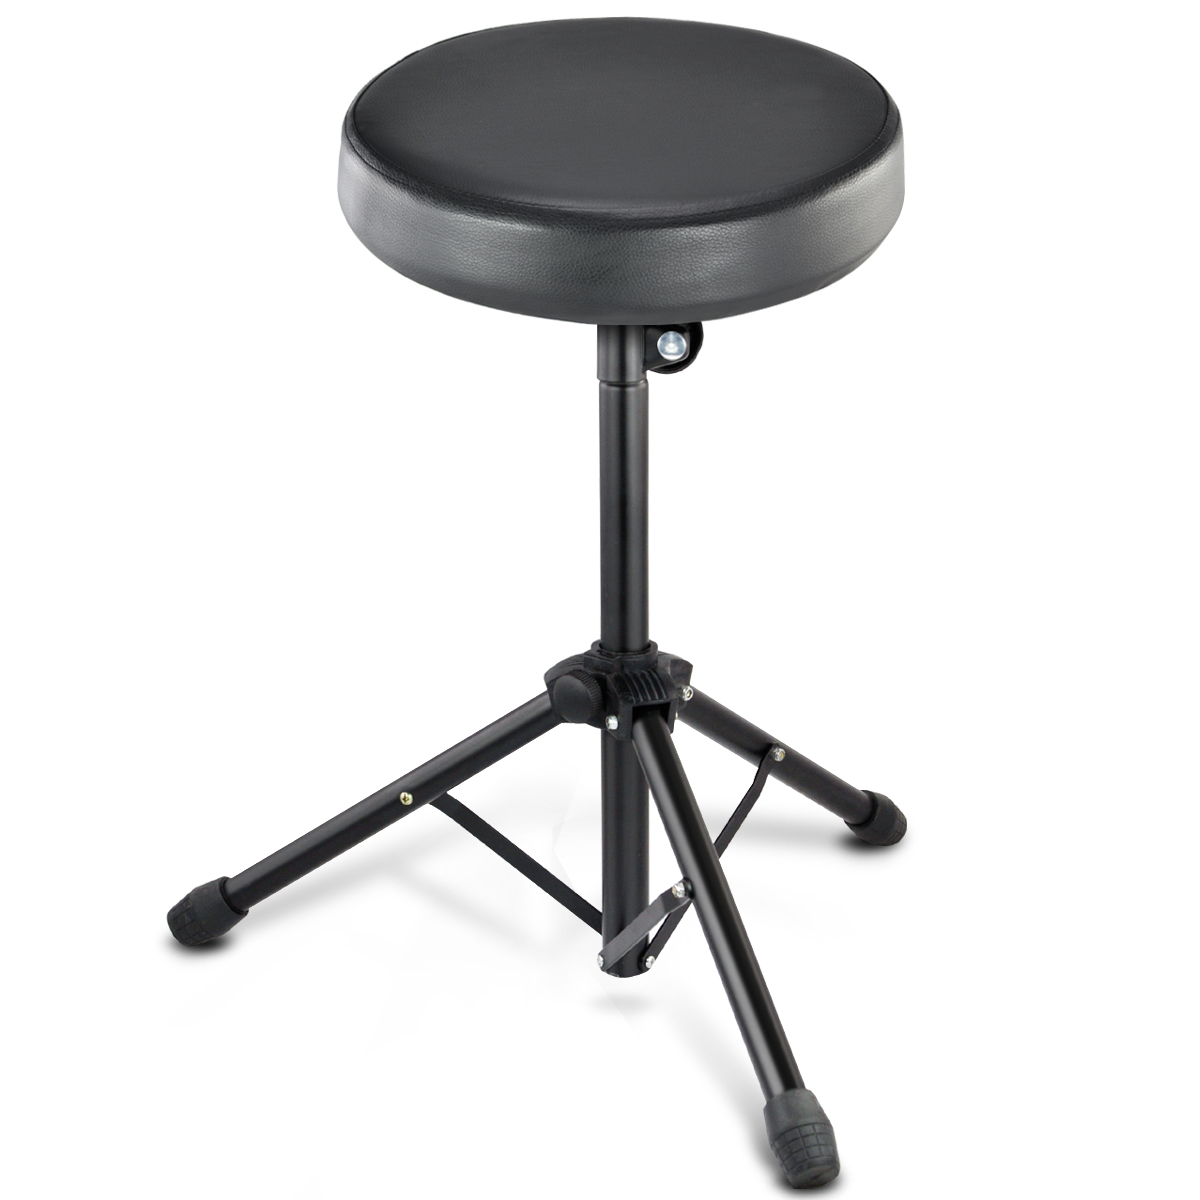 Keyboard Chair Us 37 53 5 Off Flst Pro Quality Folding Music Guitar Keyboard Drum Stool Rock Band Piano Chair Seat In Cushion From Home Garden On Aliexpress